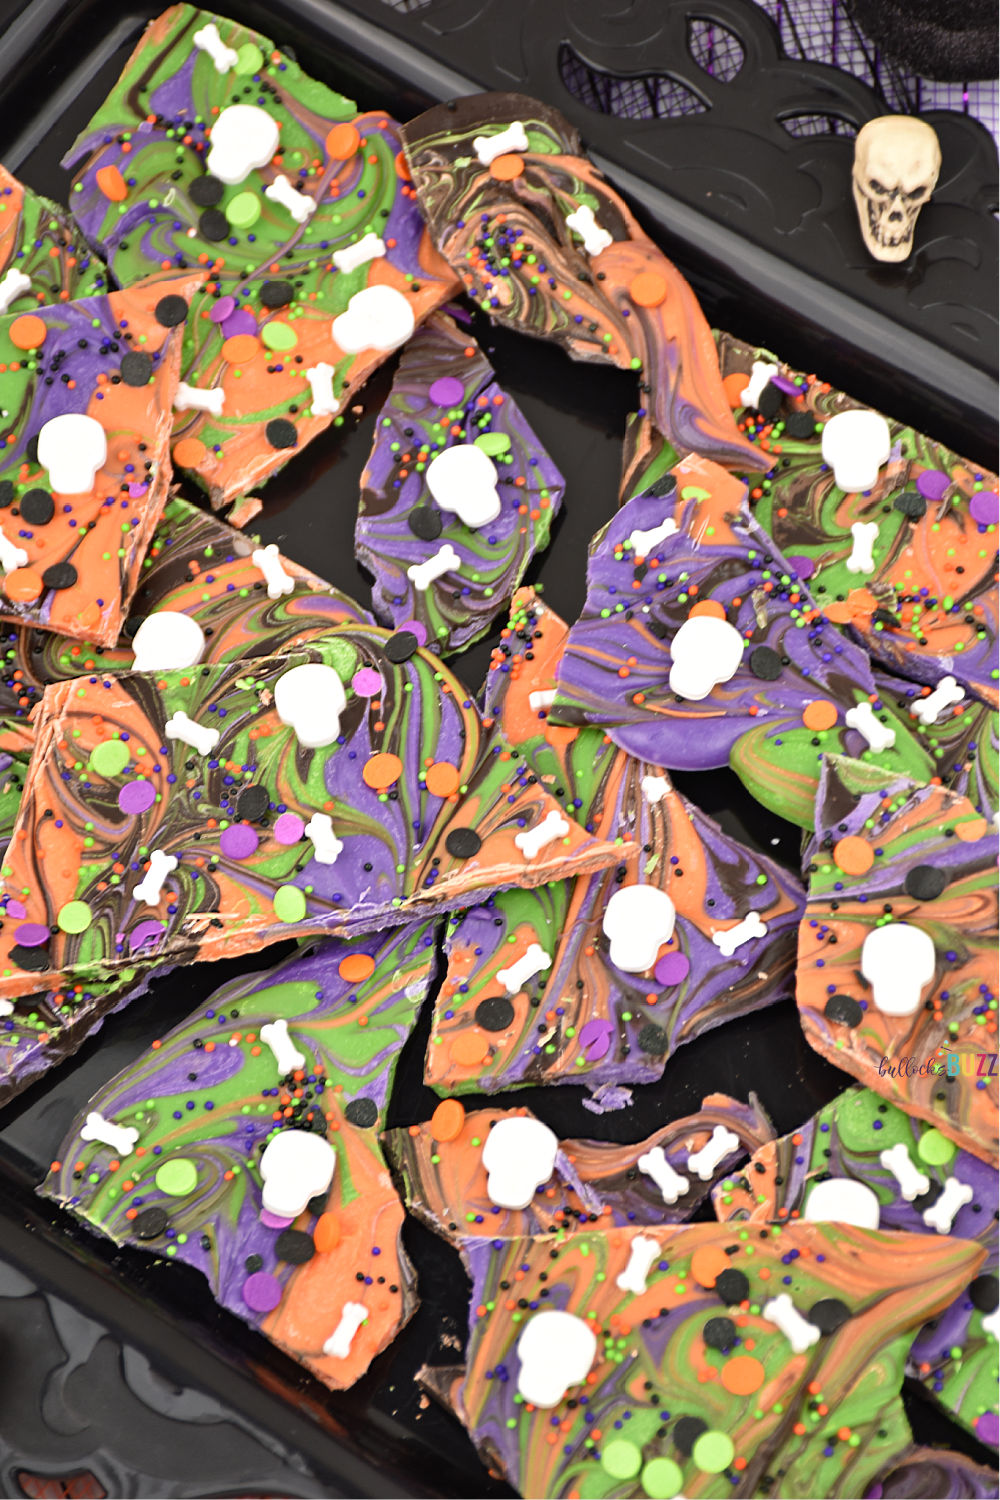 Add a little sweetness to your spooky Halloween celebration with this no-bake Boneyard Halloween Candy Bark. Find the recipe on the Bullock's Buzz blog!